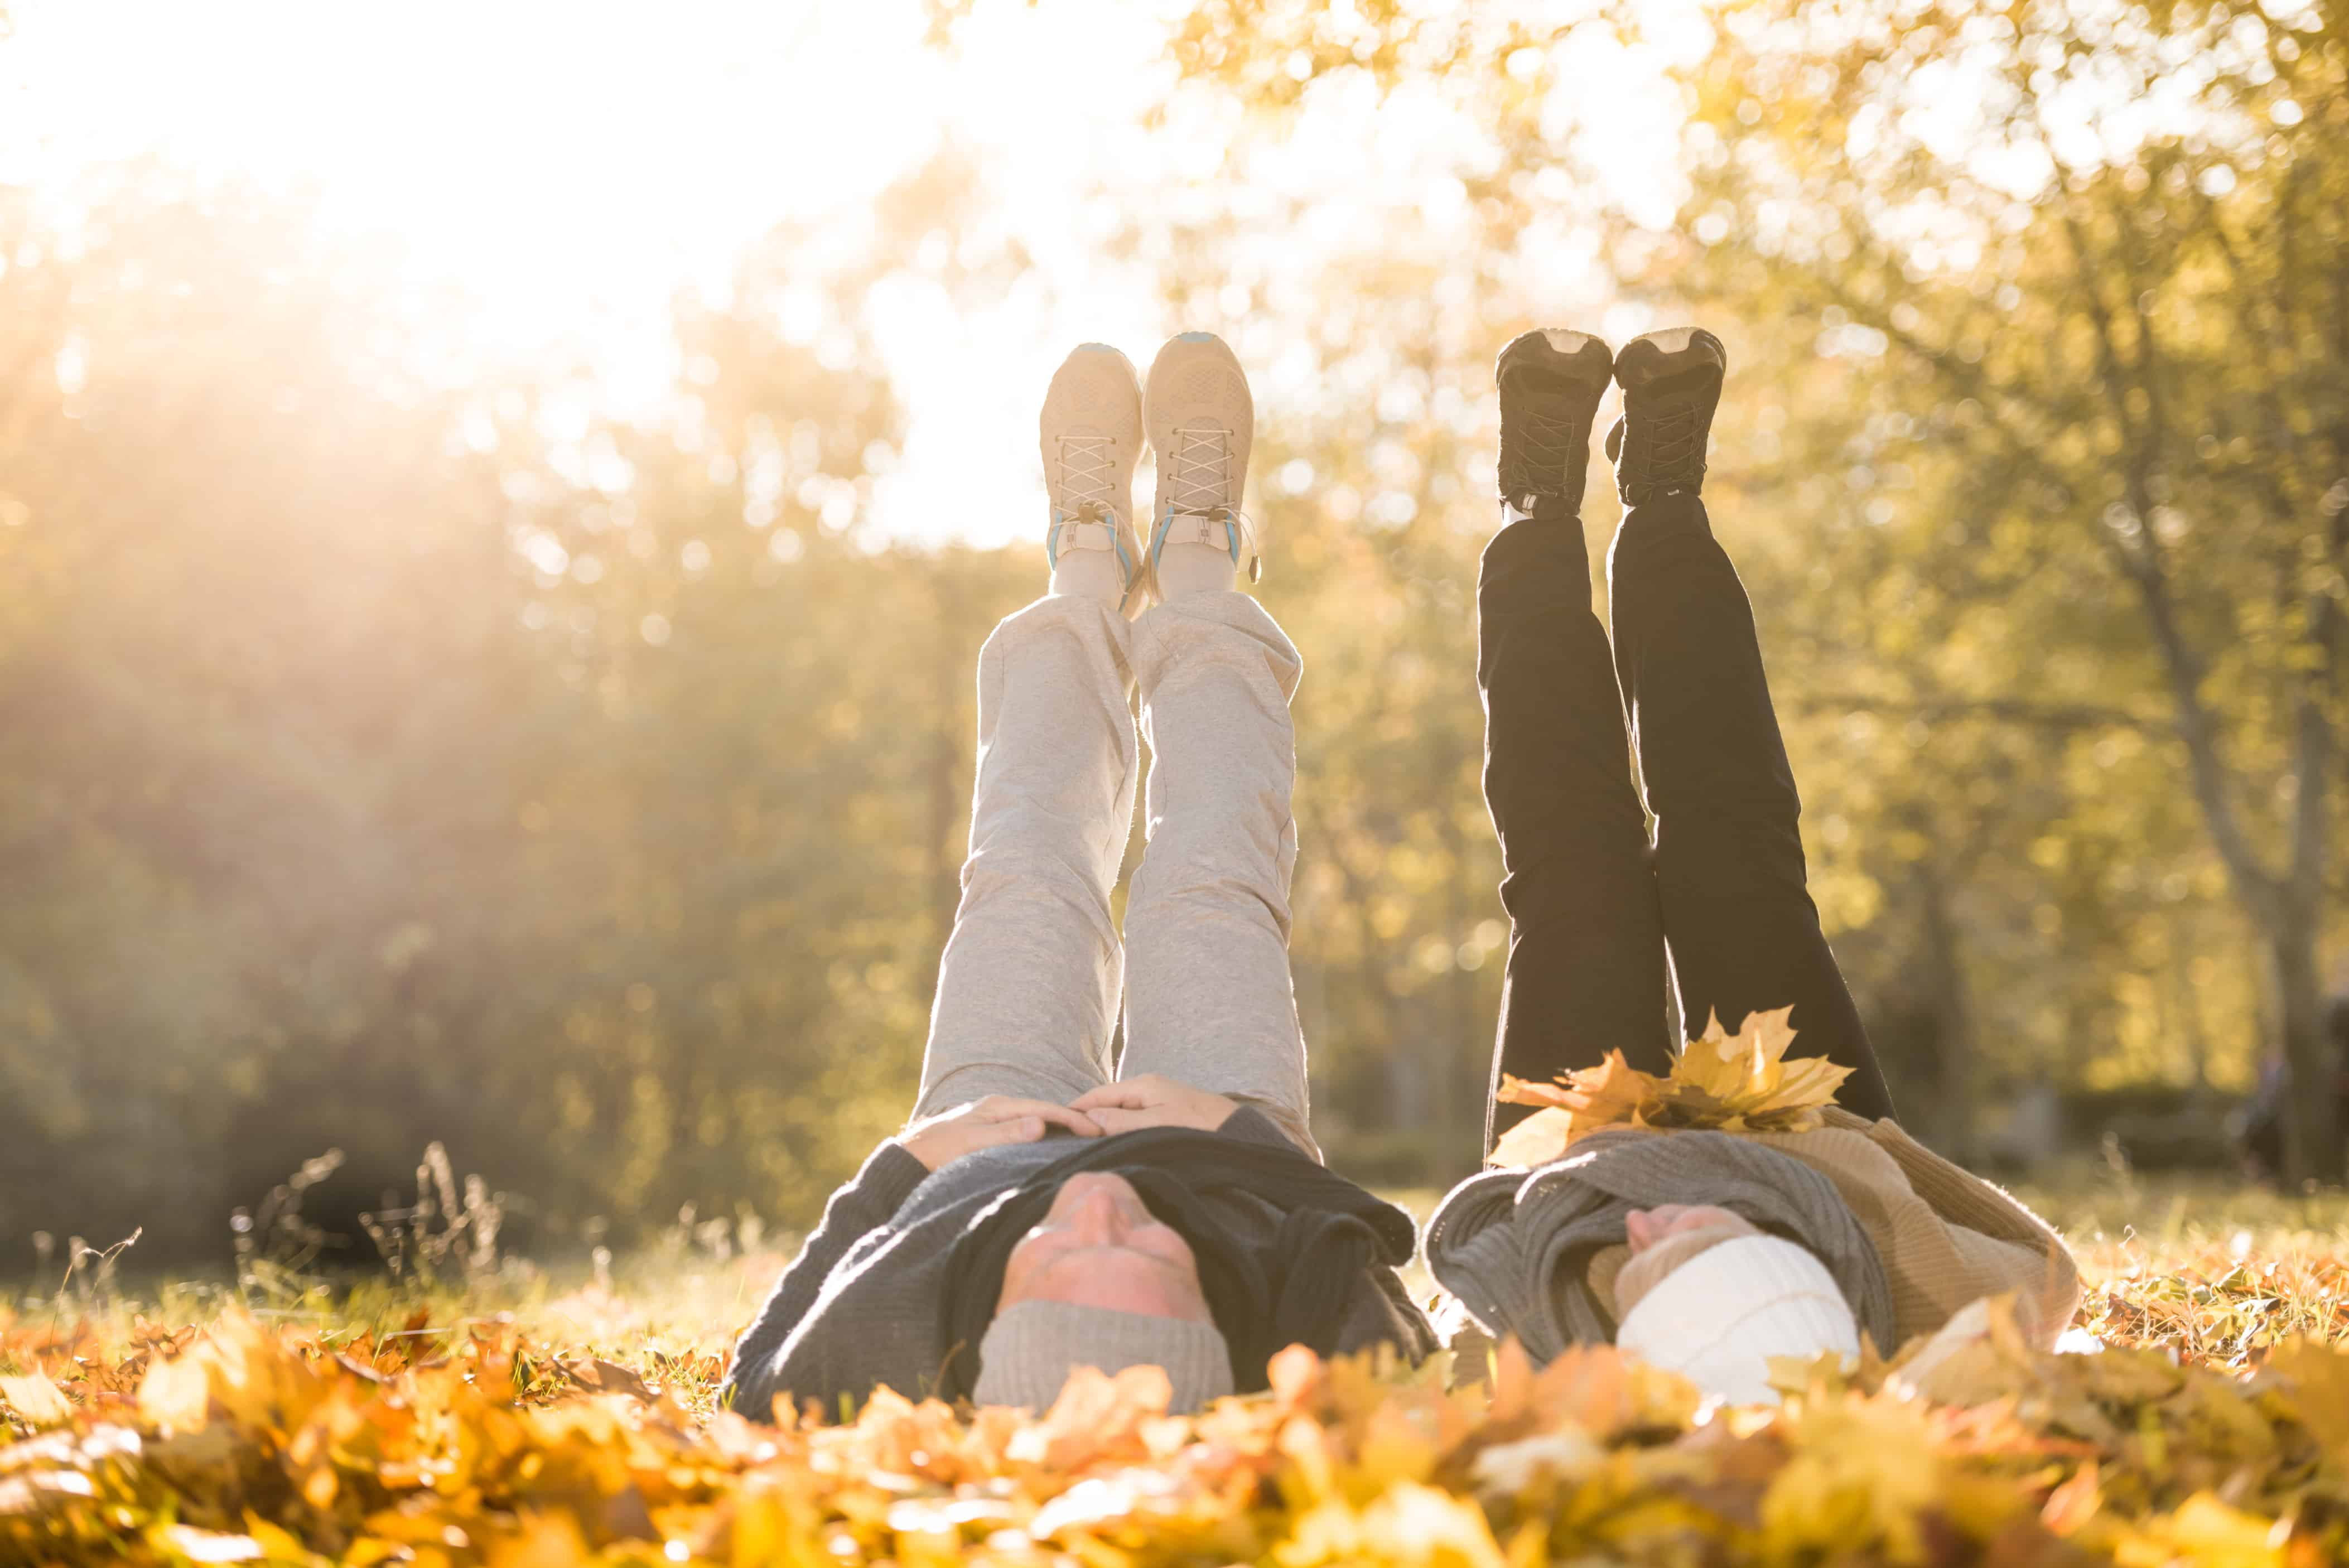 4 Fun Senior Activities for the Fall